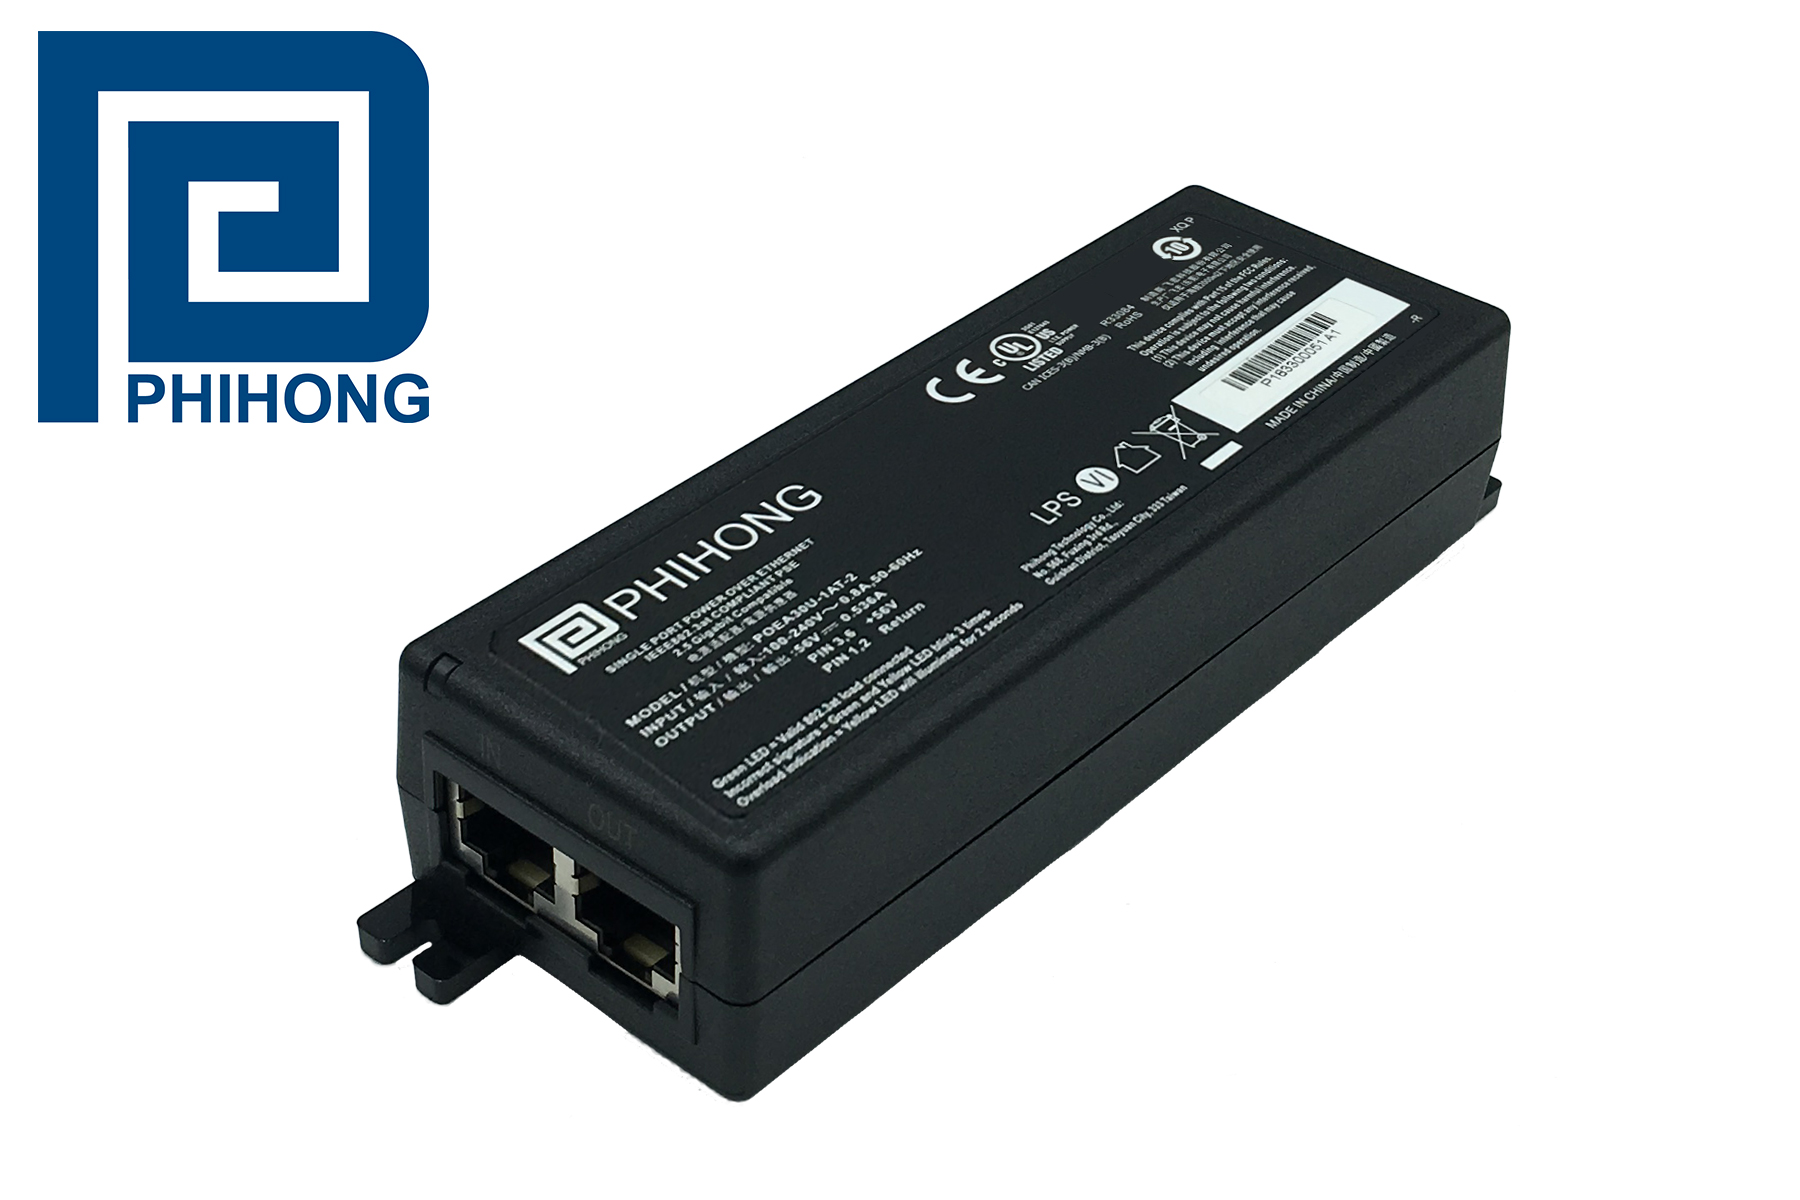 POE Injectors Support 2.5G, 5G and 10G Transmission Rates